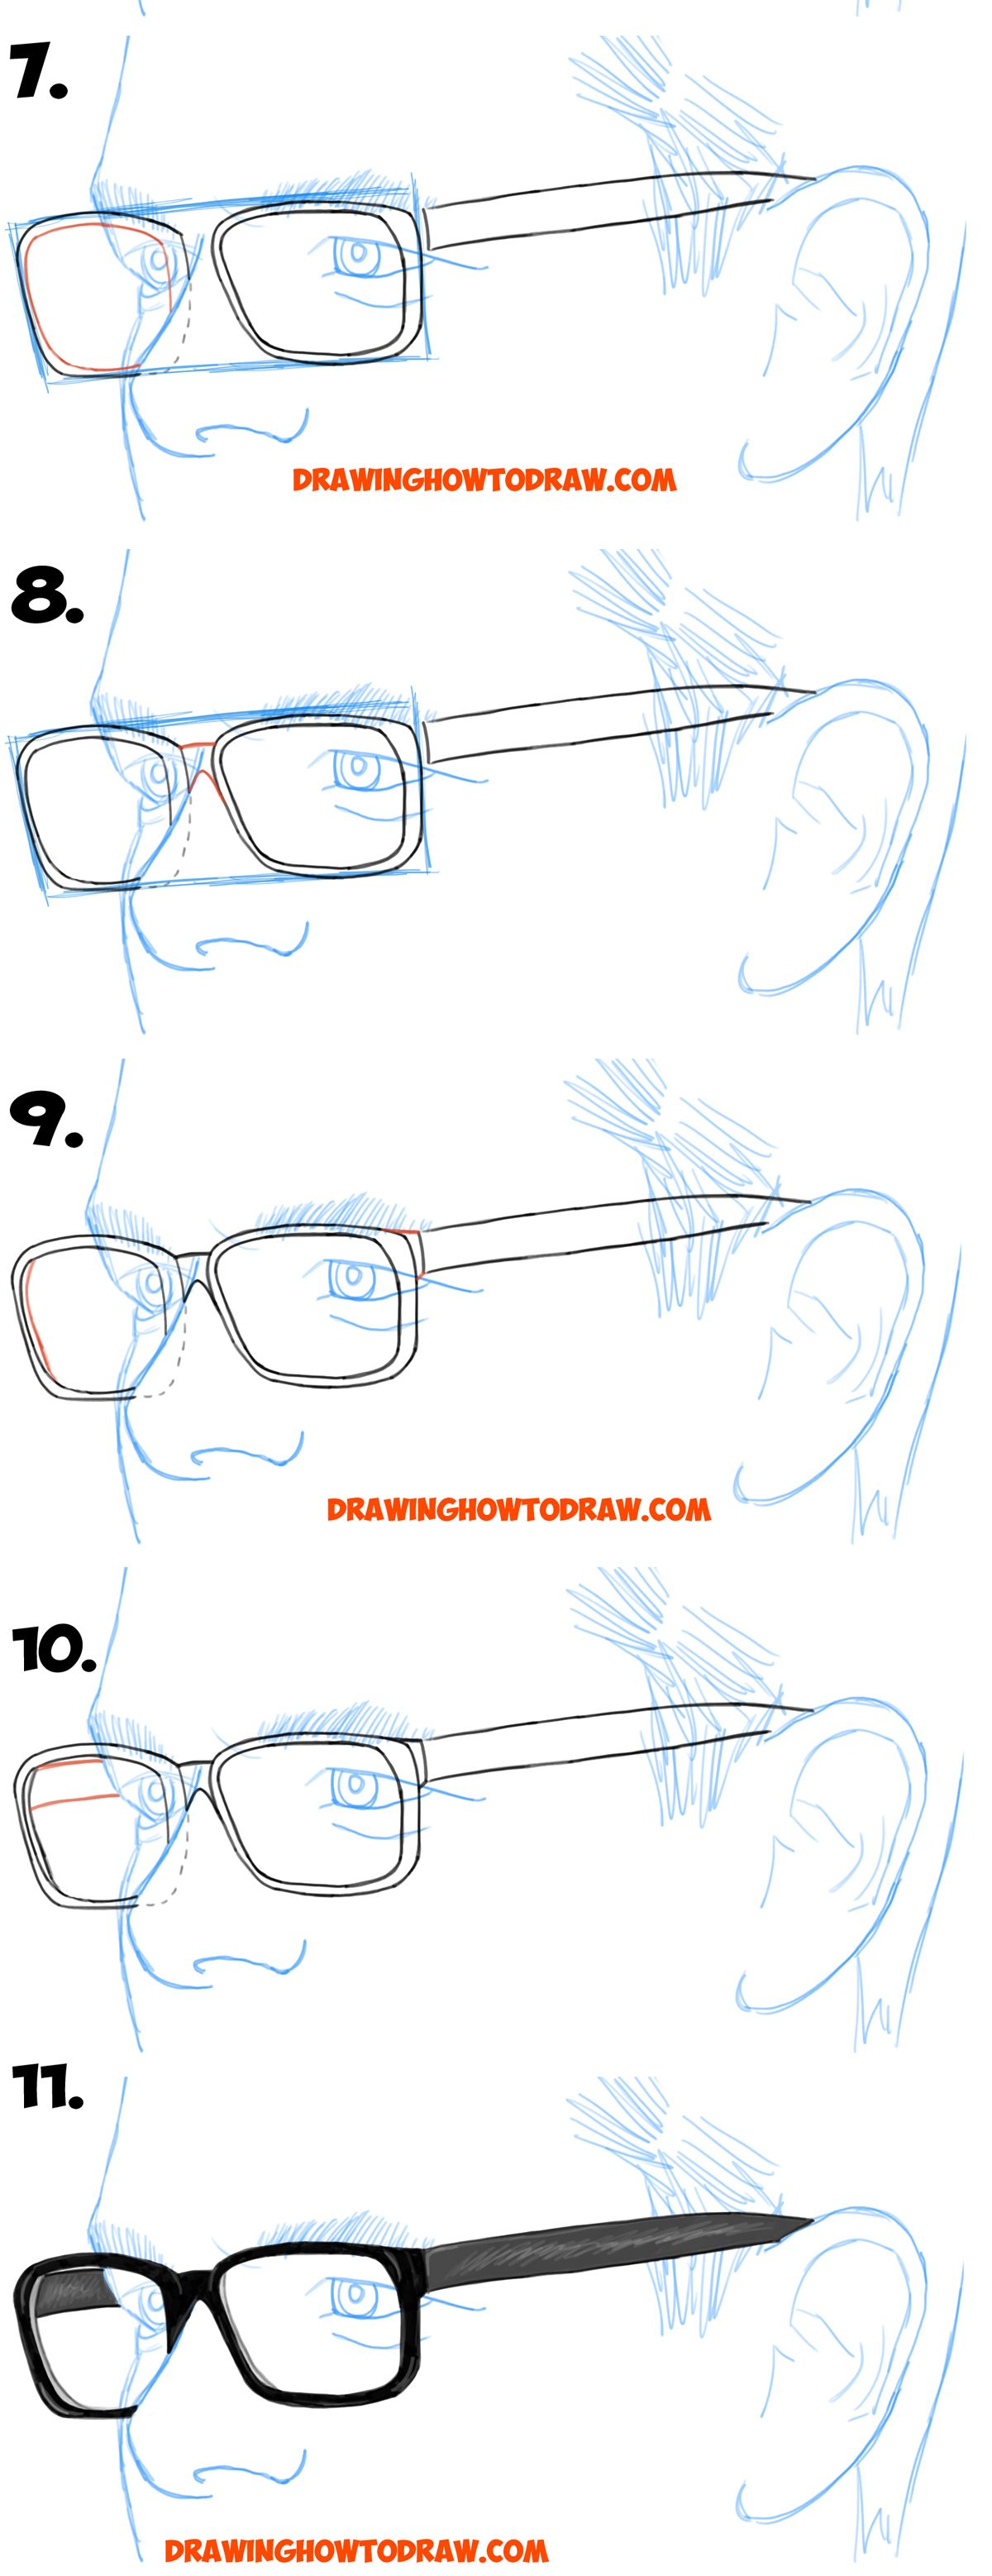 How to Draw Glasses on a Person's Face from All Angles